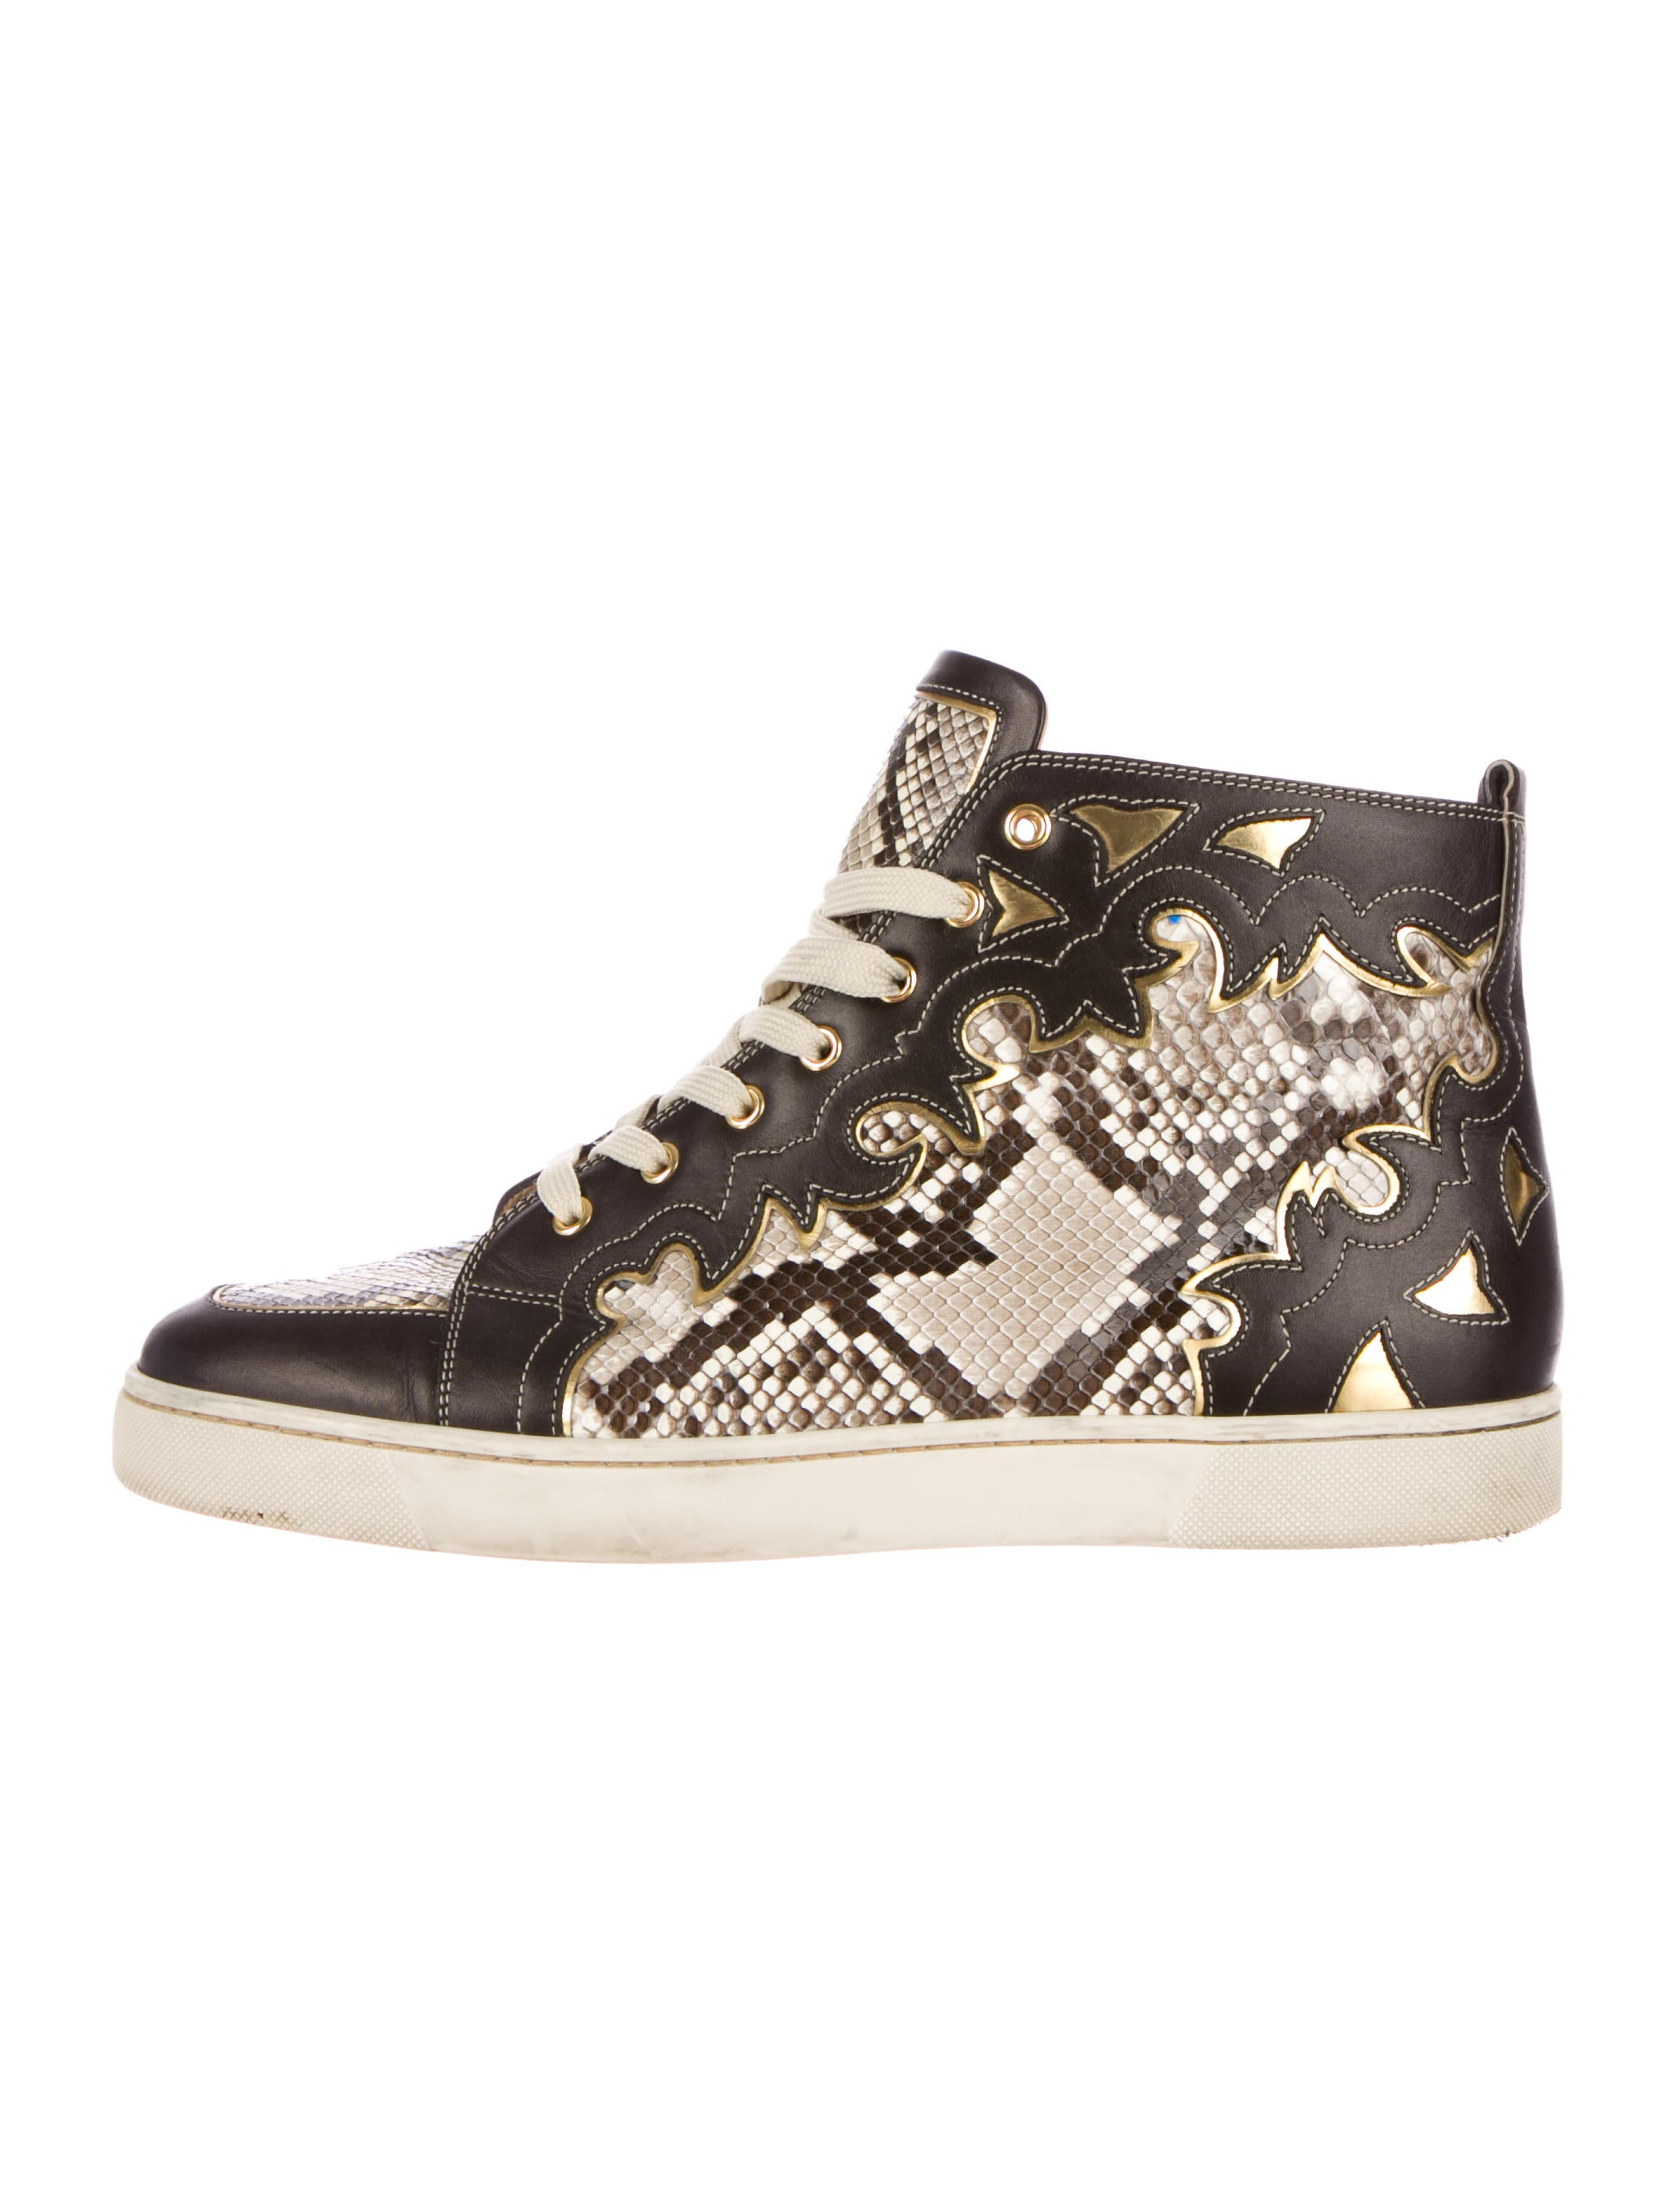 online retailer b5077 9b8ca Artesur » christian louboutin Orlato high-top sneakers brown ...